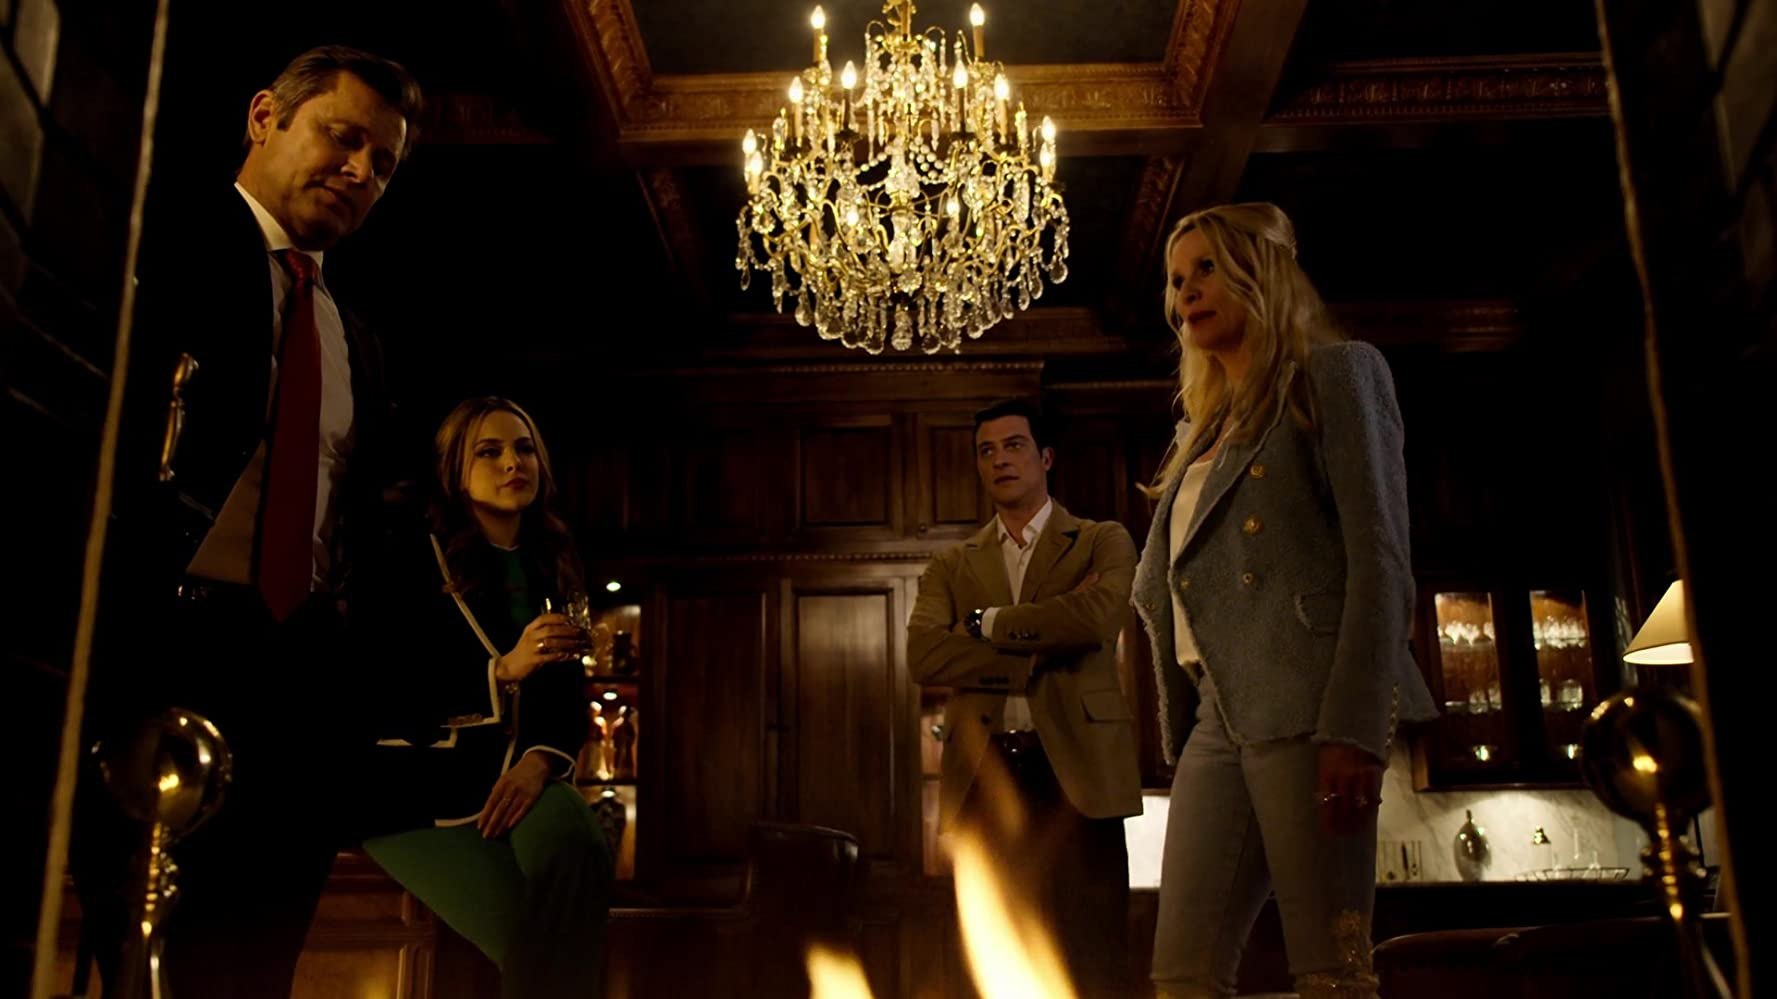 Nicollette Sheridan, Grant Show, Elizabeth Gillies, and James Mackay in Dynasty (2017)